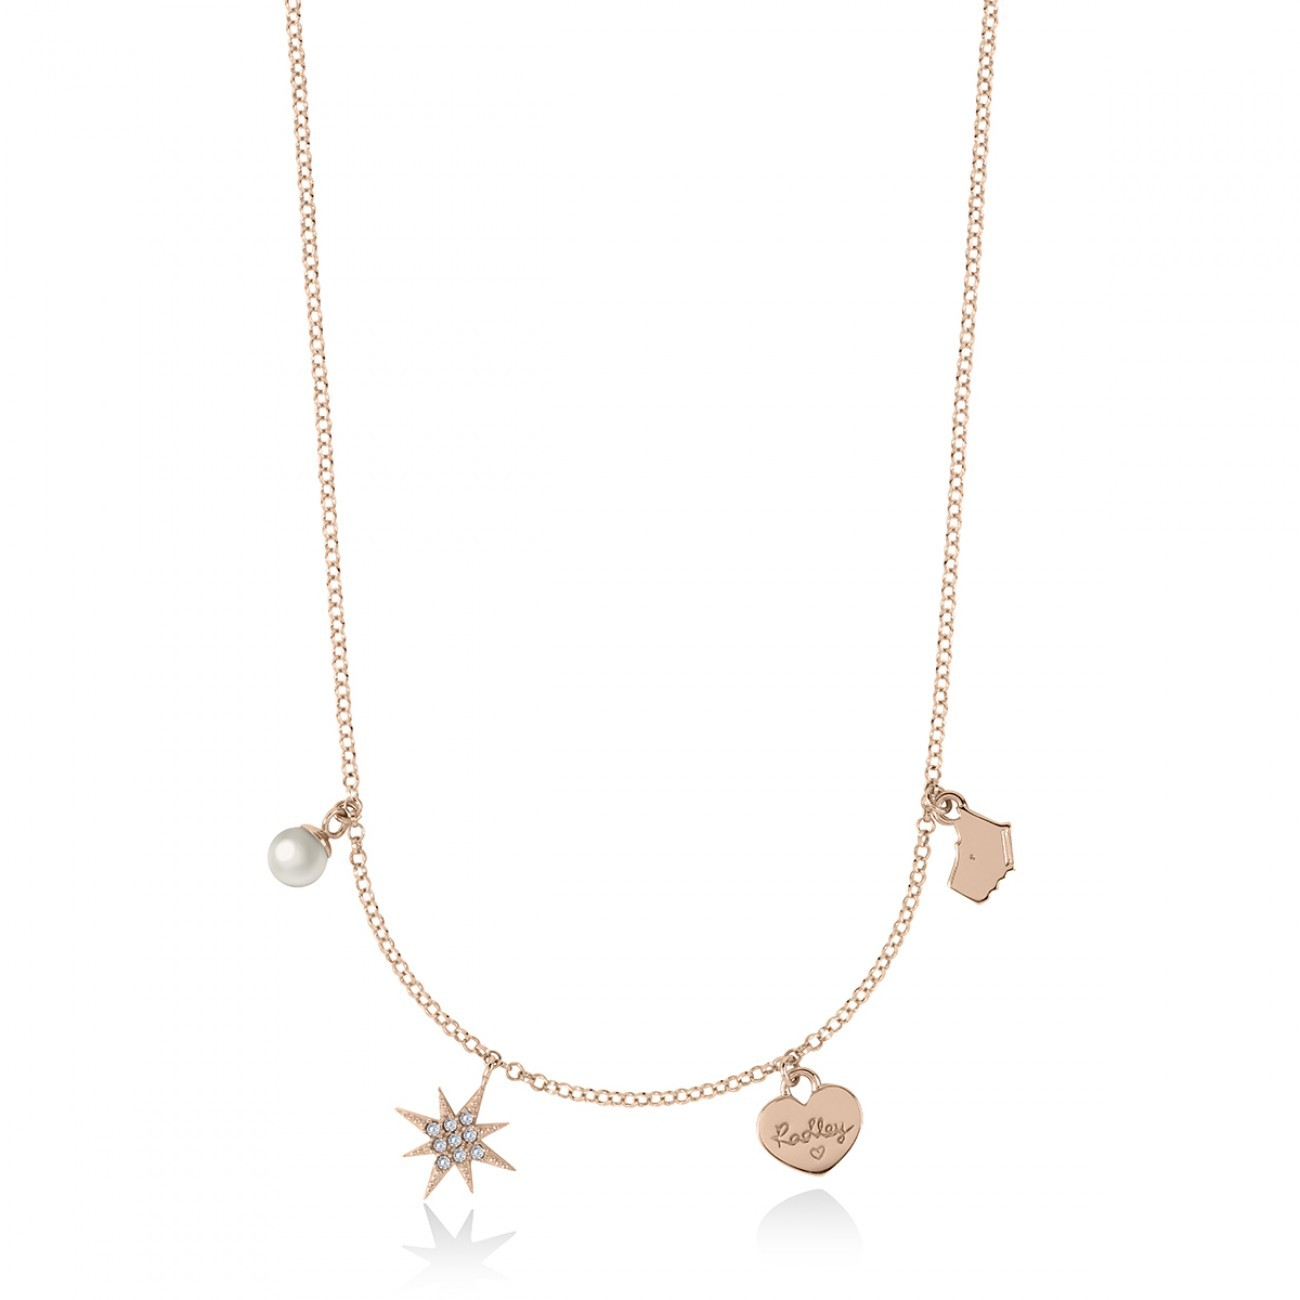 Radley London Pearl Pearl Ditsy Chain  Necklace